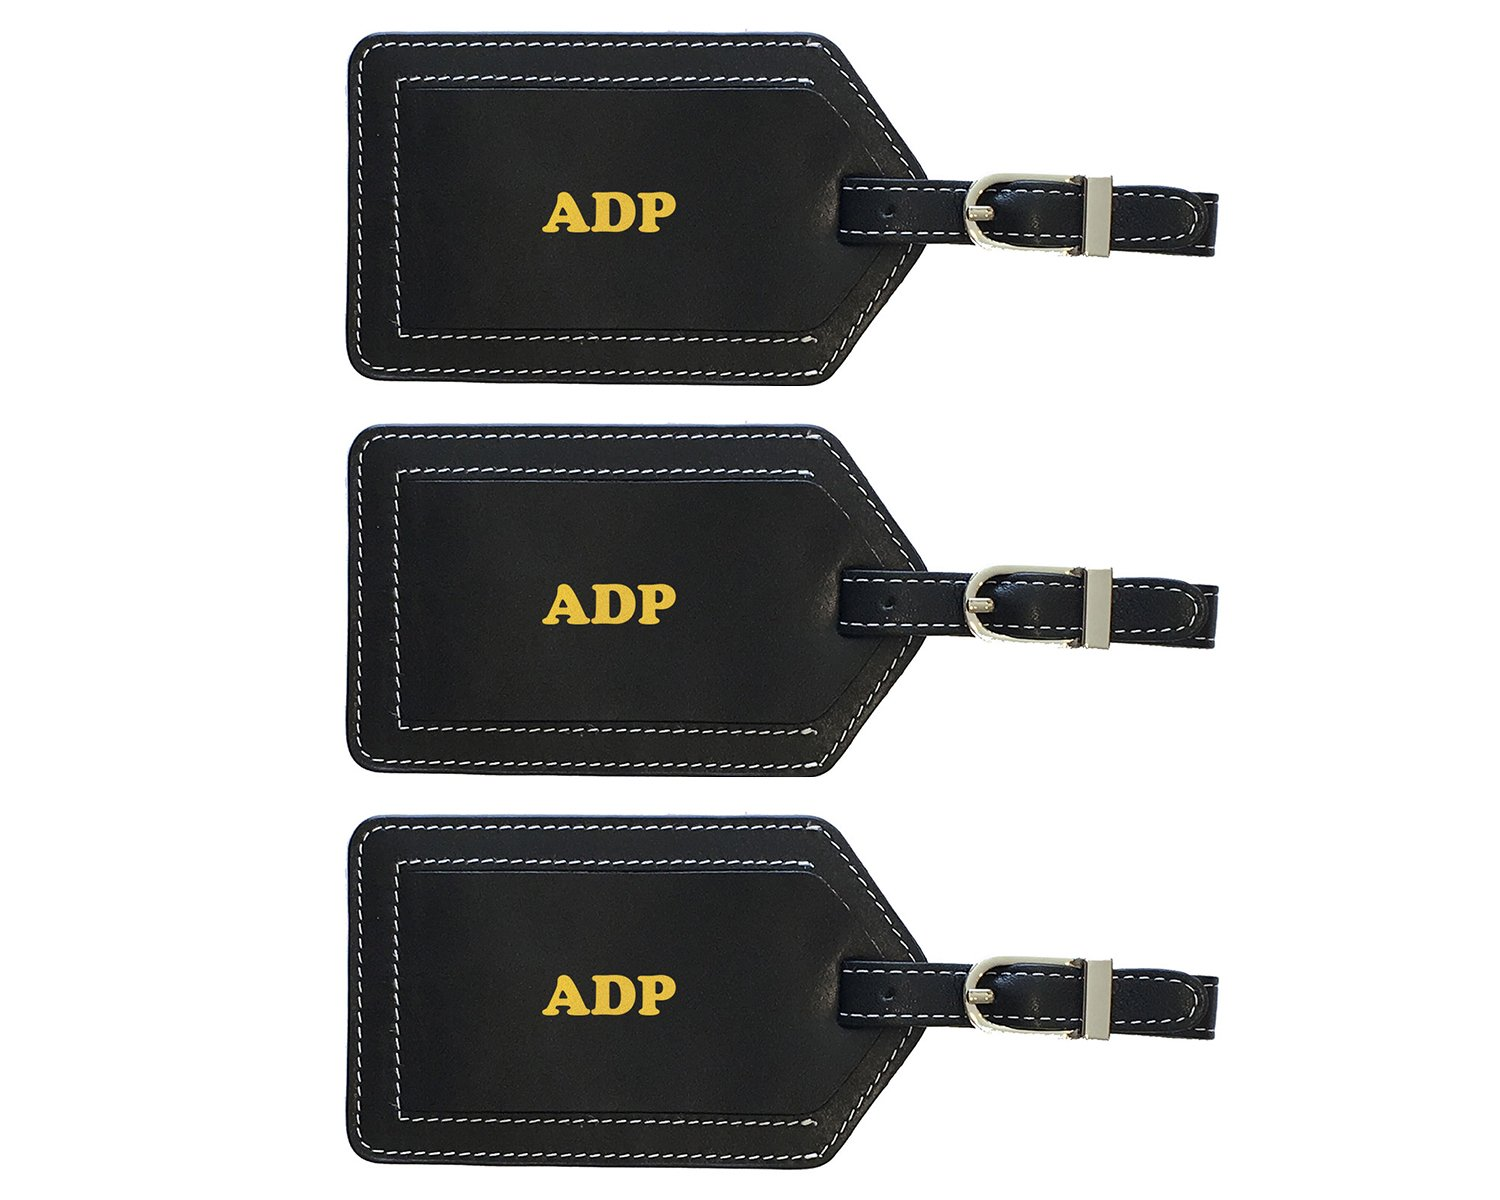 Personalized Monogrammed Black Leather Luggage Tags - 3 Pack by 123 Cheap Checks